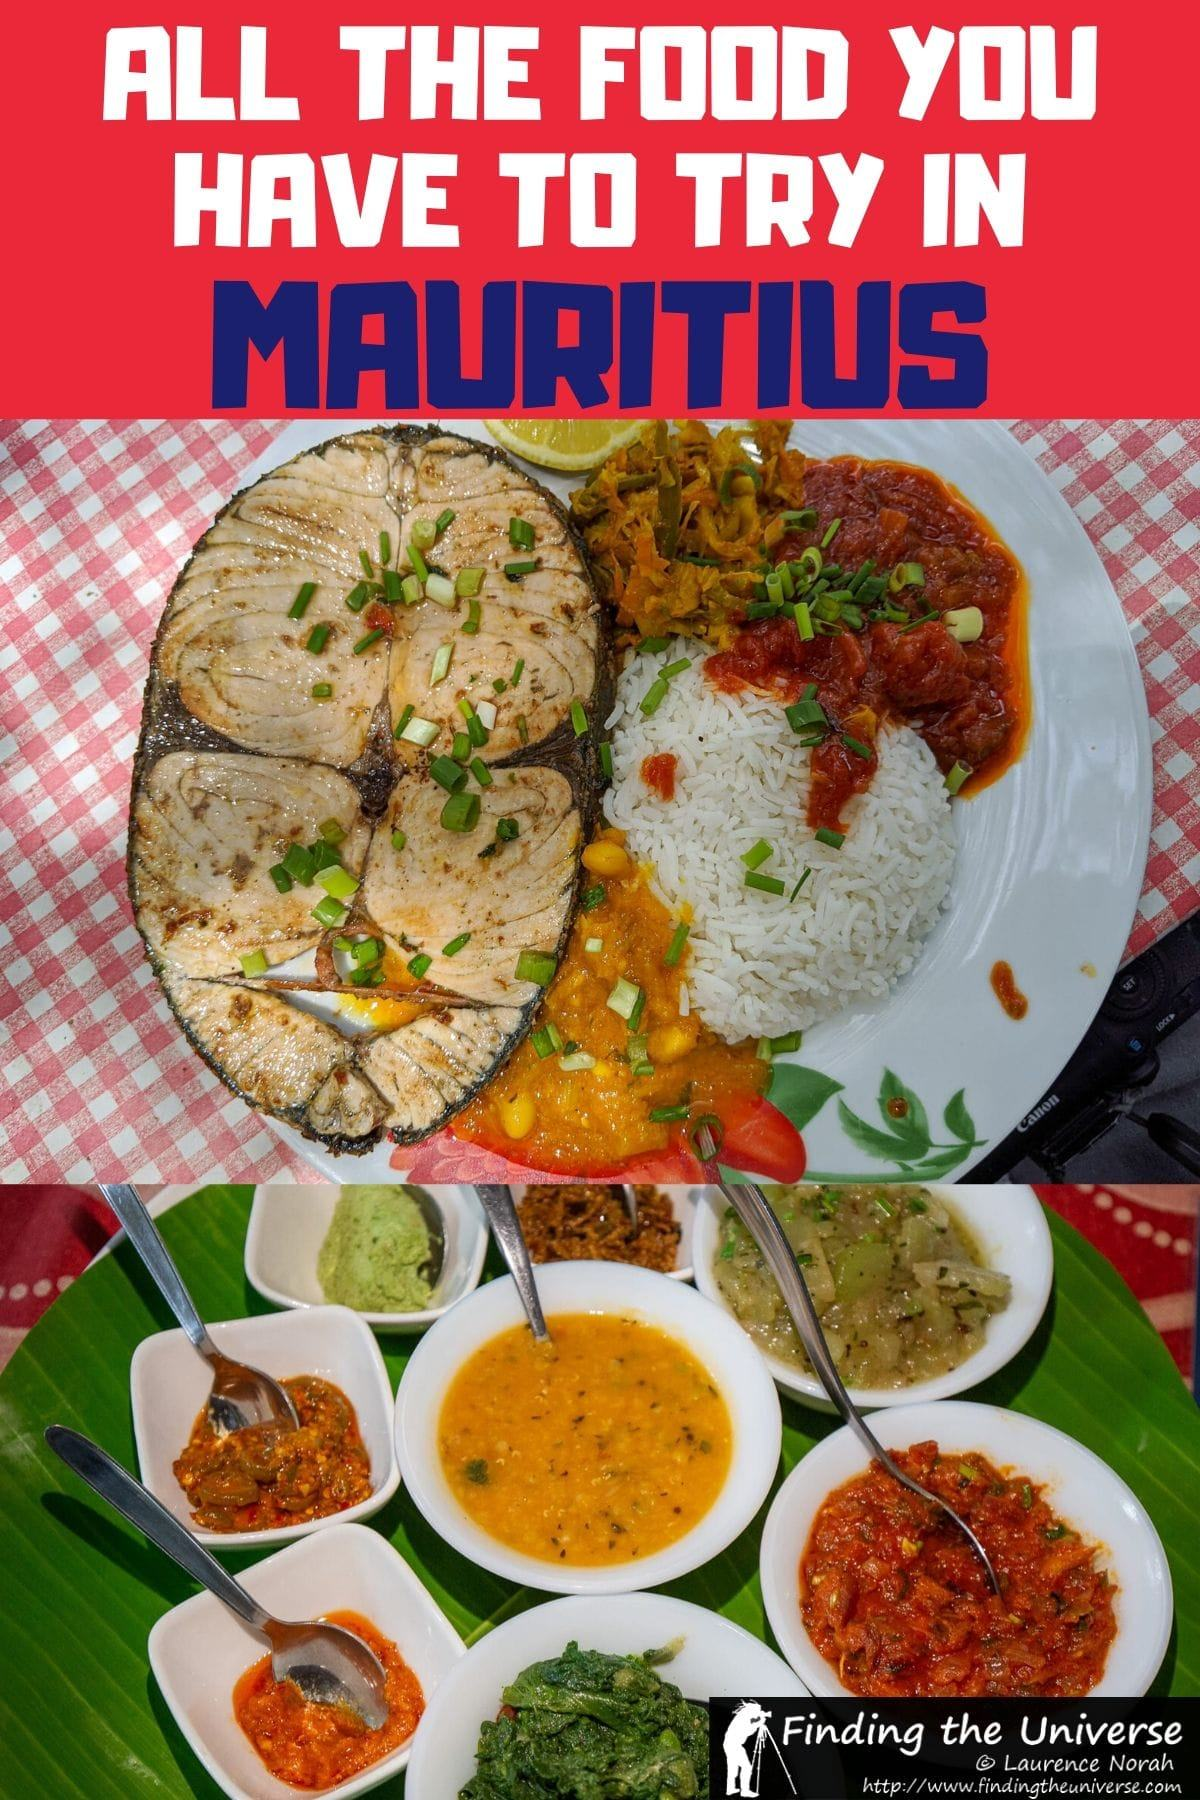 A guide to some of the best food in Mauritius you have to try when you visit. Includes curries, creole flavours, Sino-Mauritian dishes, drinks and desserts!